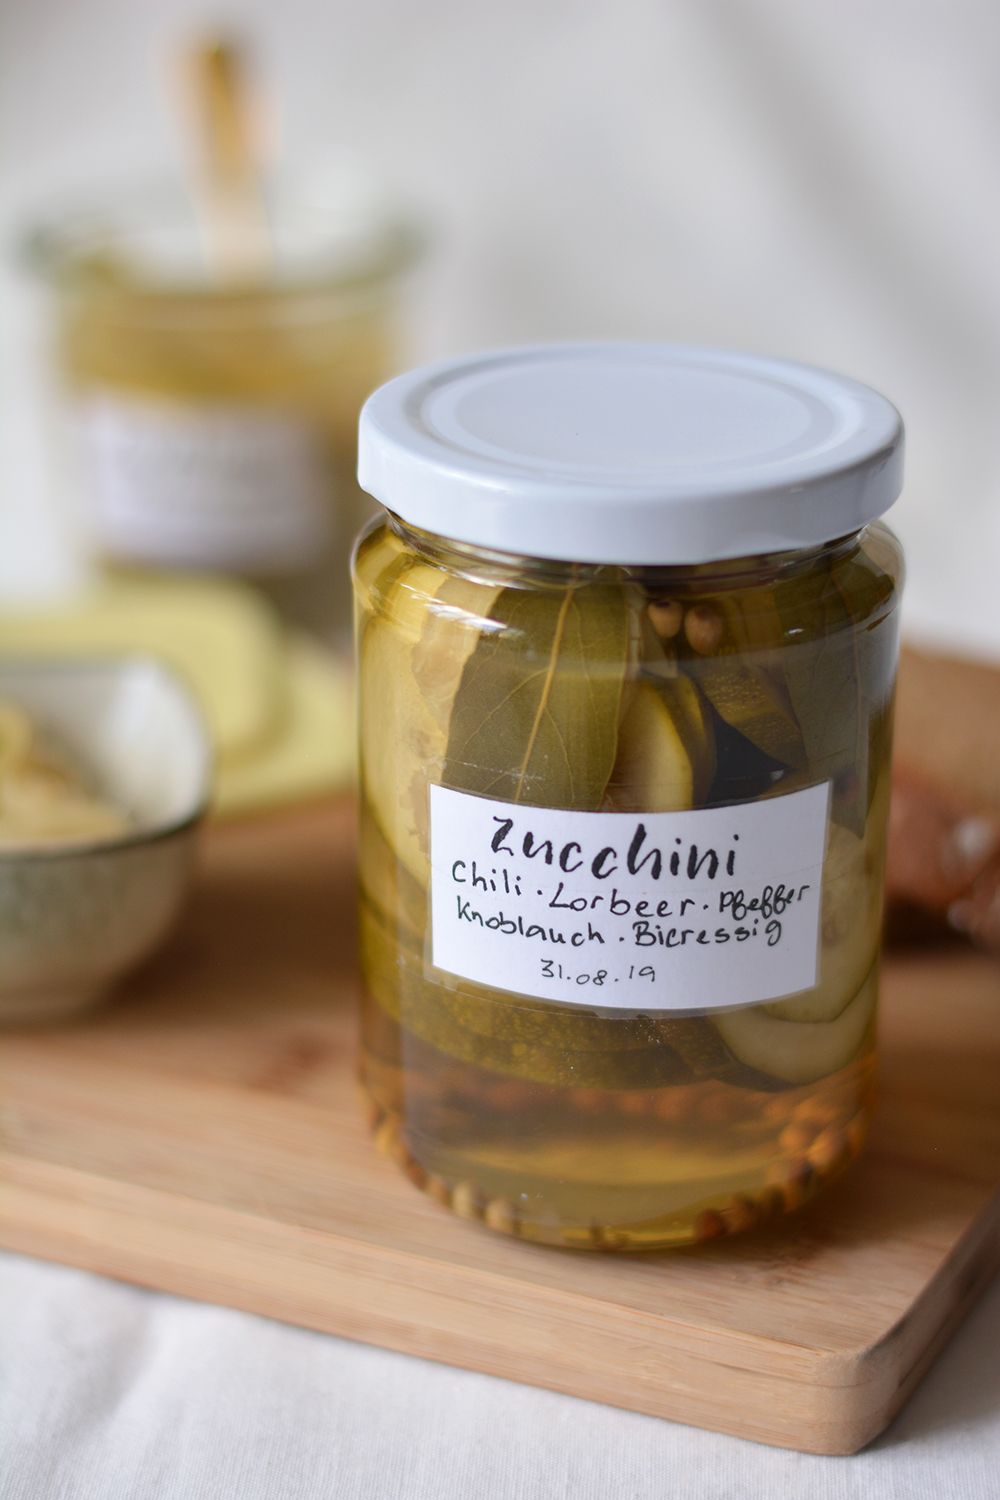 Zucchini Pickles | we love handmade